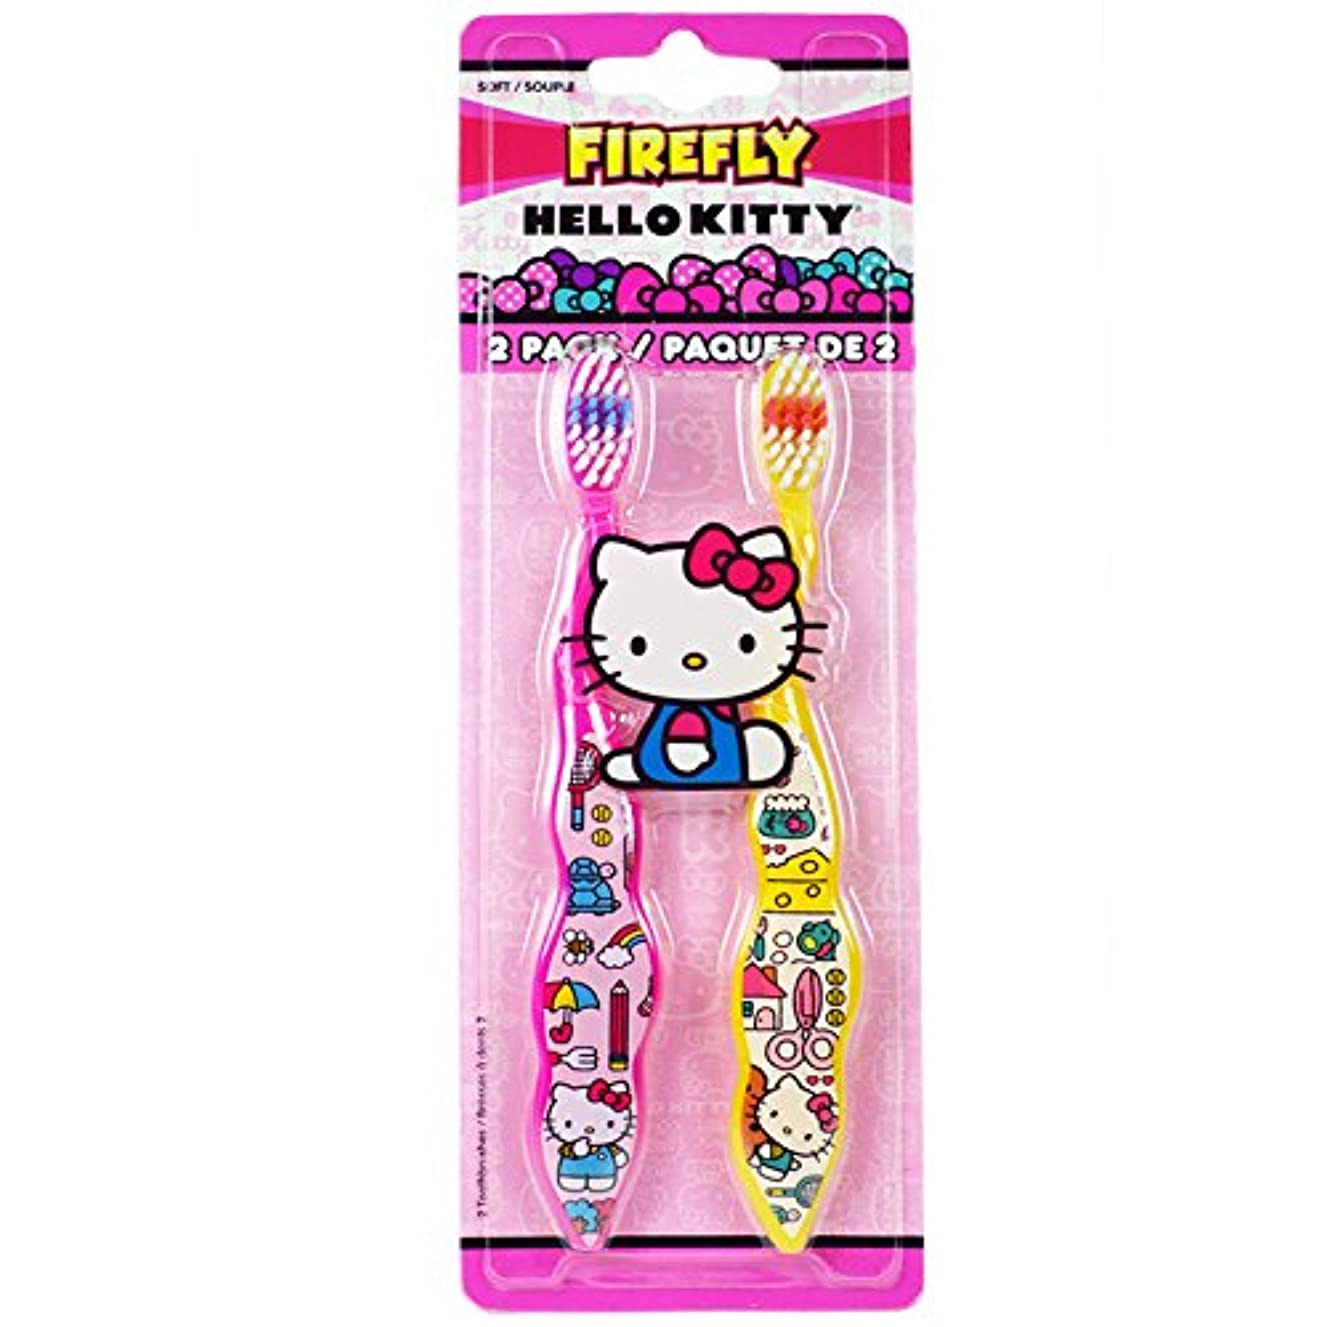 ニコチンできれば木Dr. Fresh Firefly Hello Kitty Toothbrush, Soft by Firefly